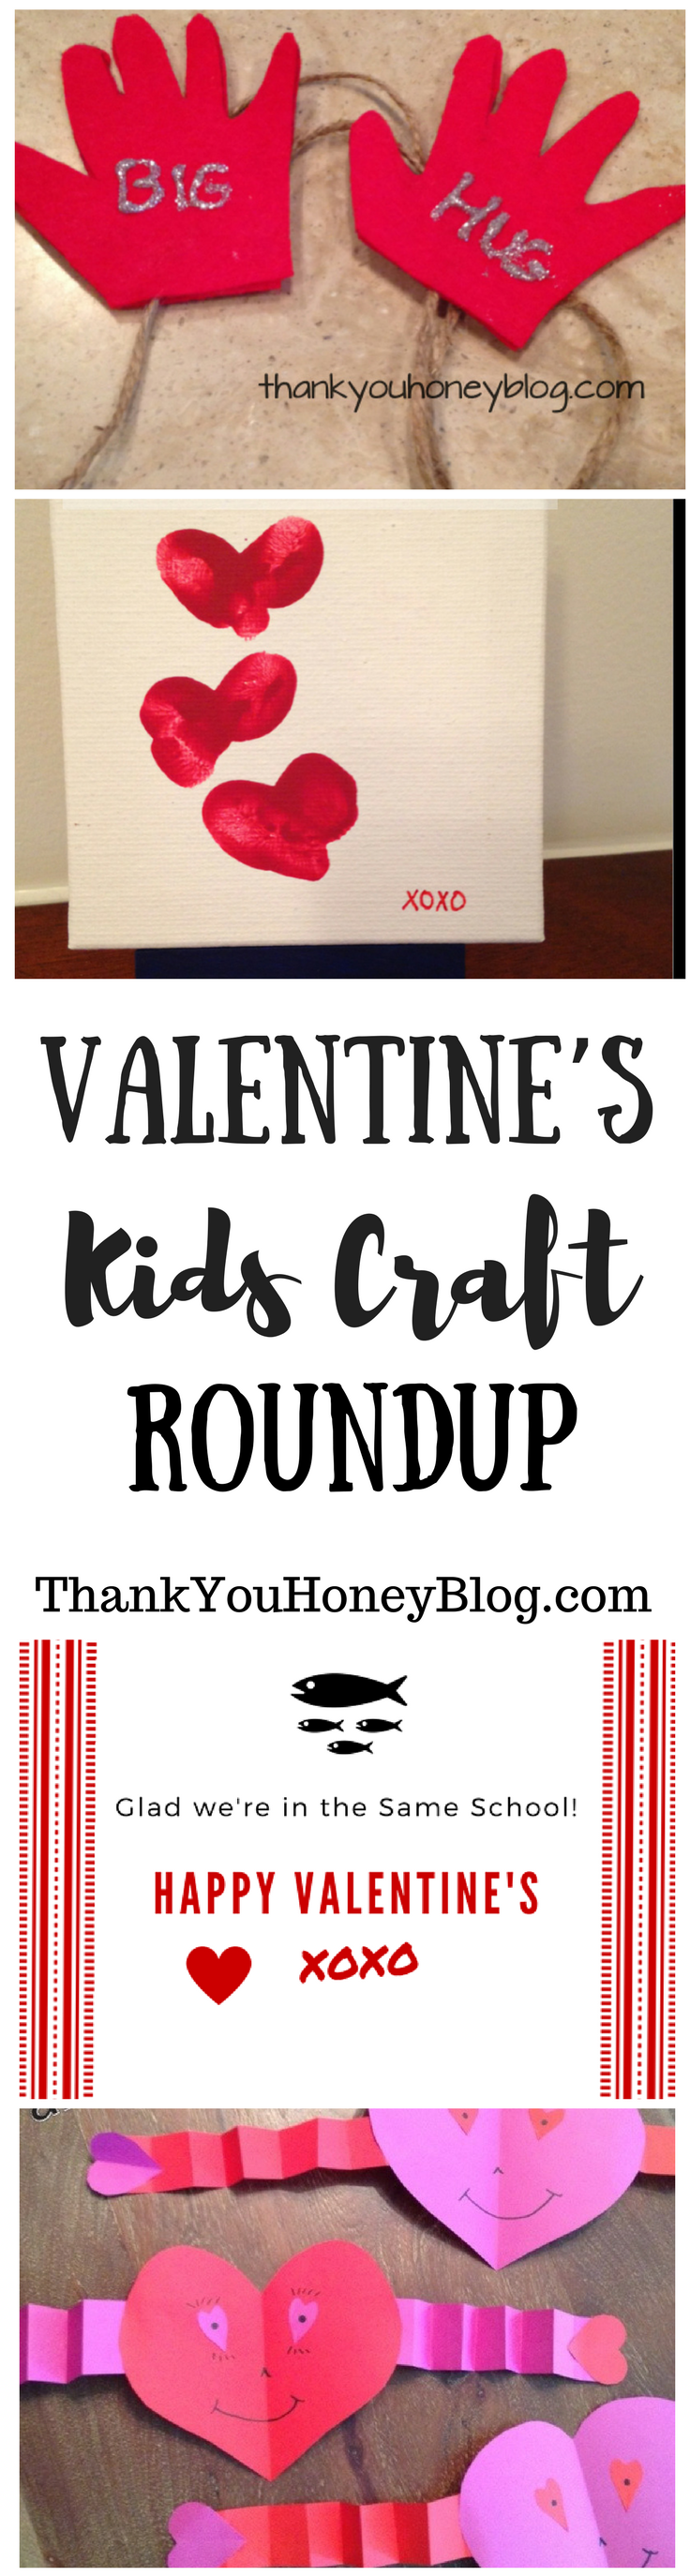 Valentine's Kids Craft Roundup